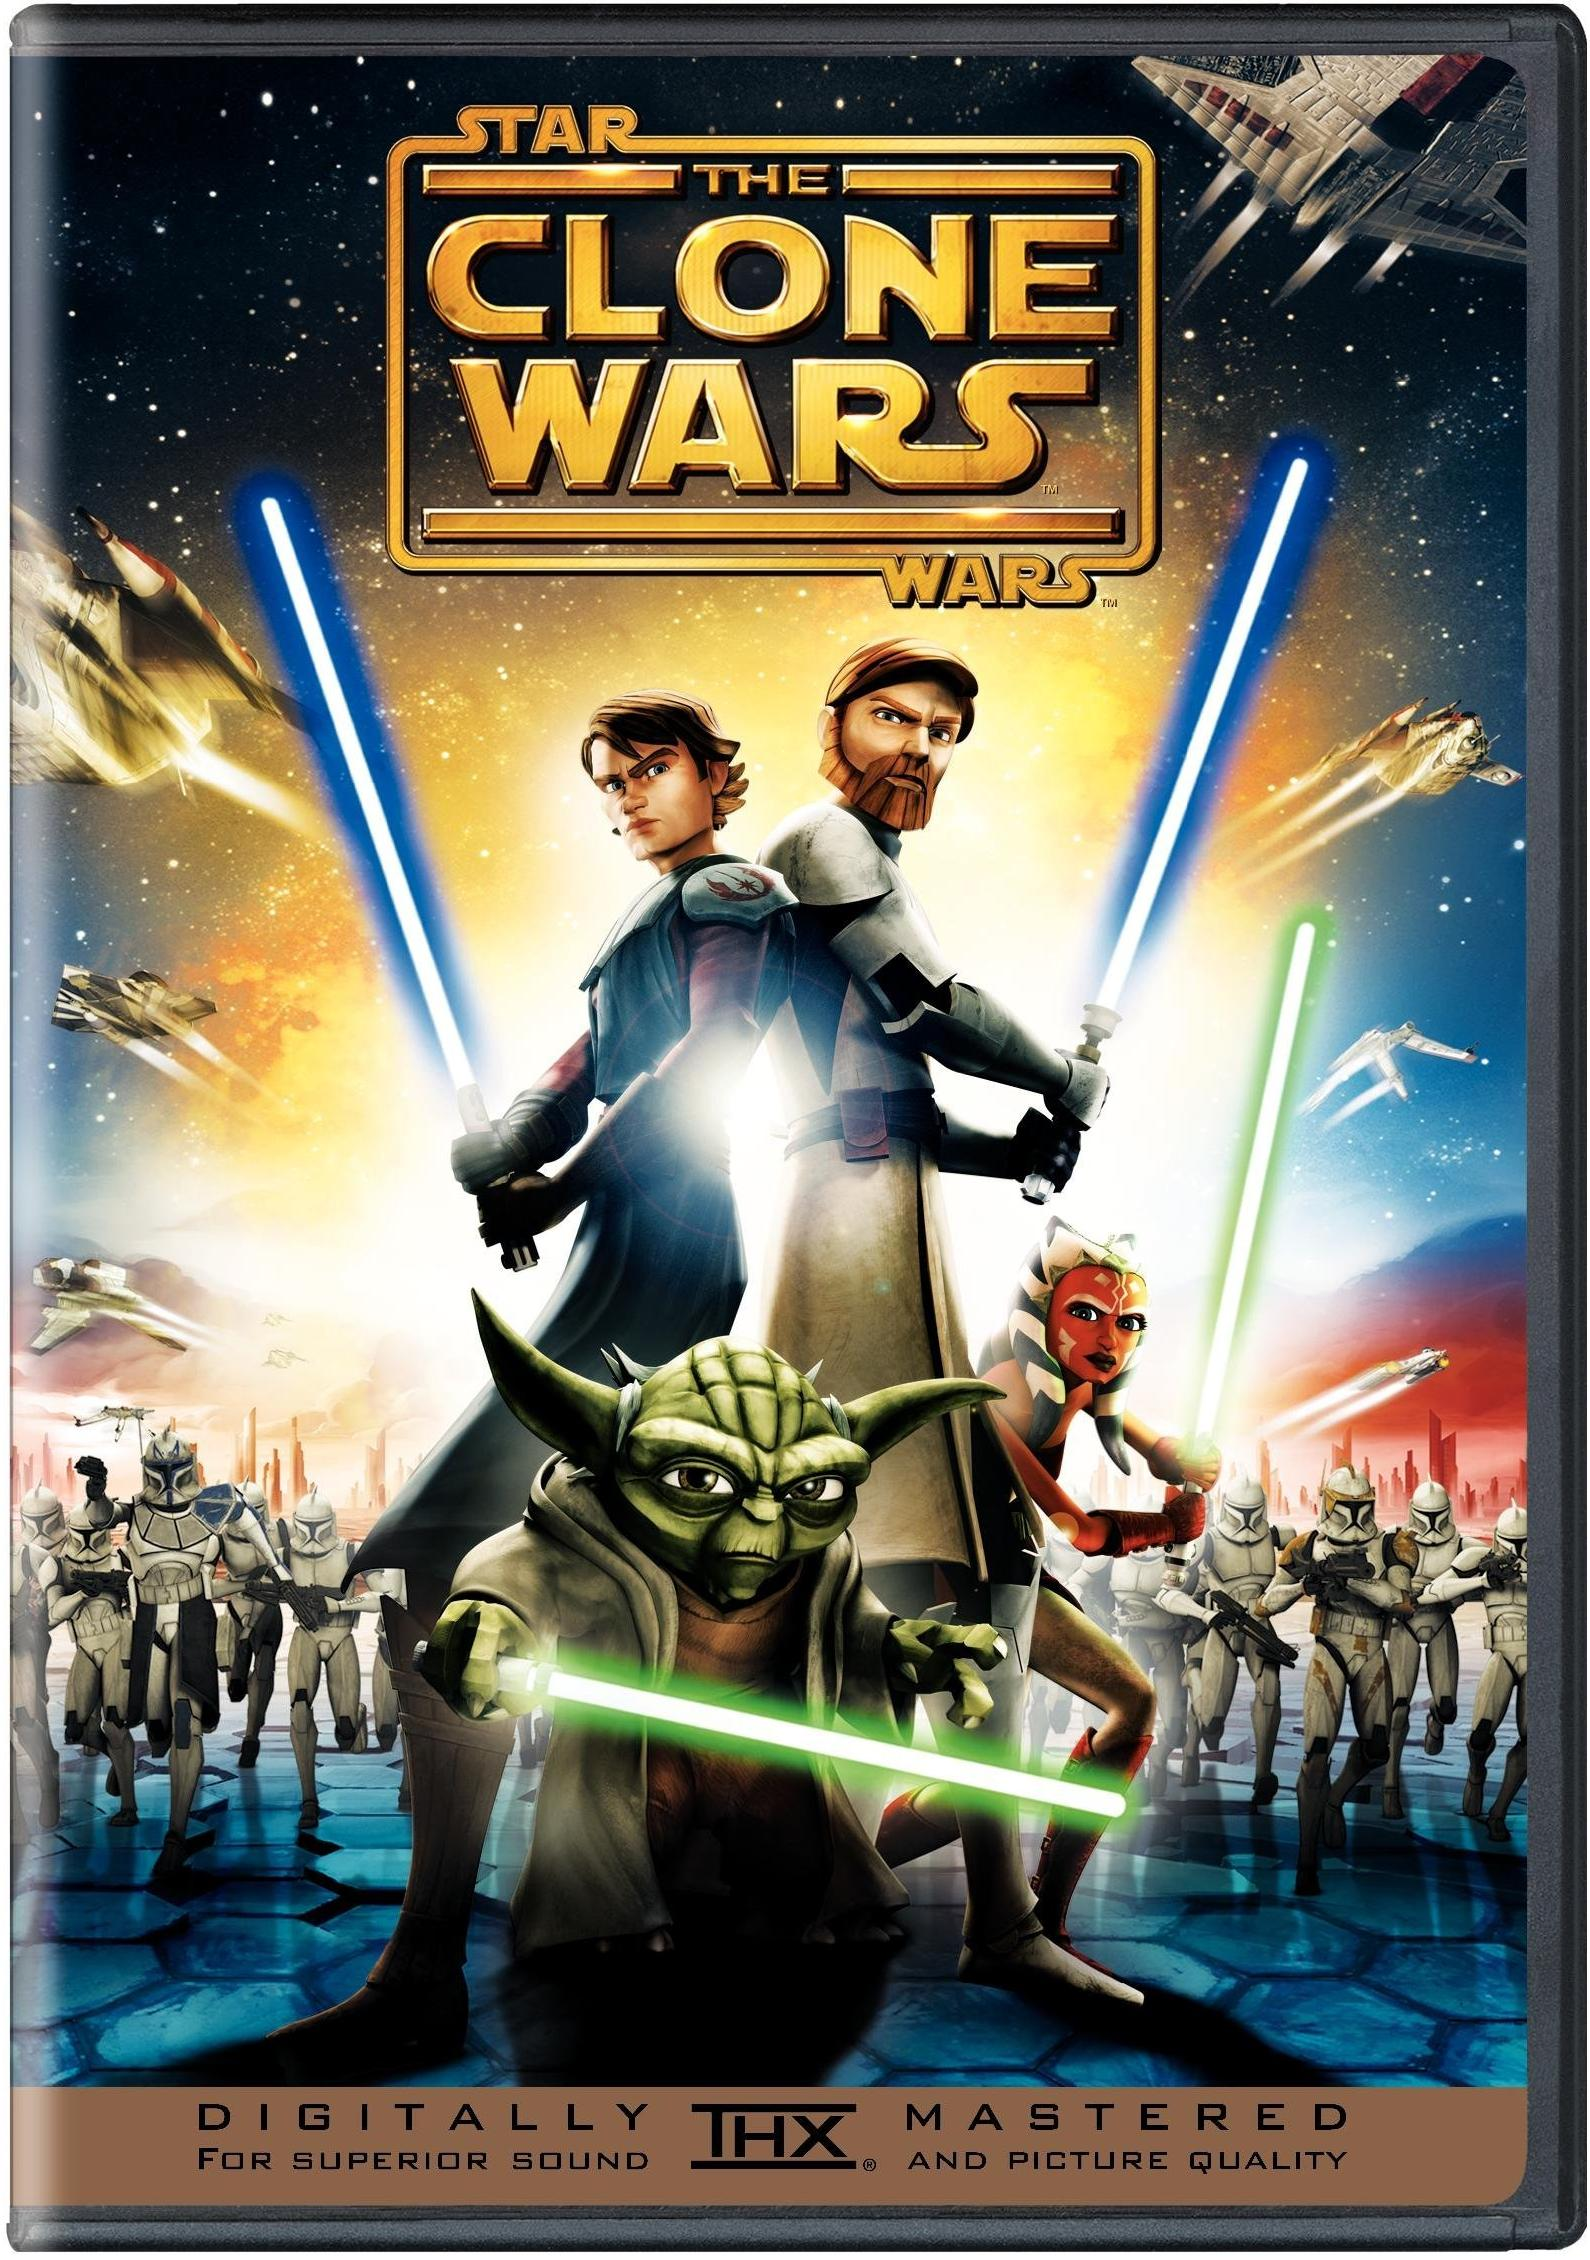 Star Wars: The Clone Wars In Search of the Crystal S.7.E.2